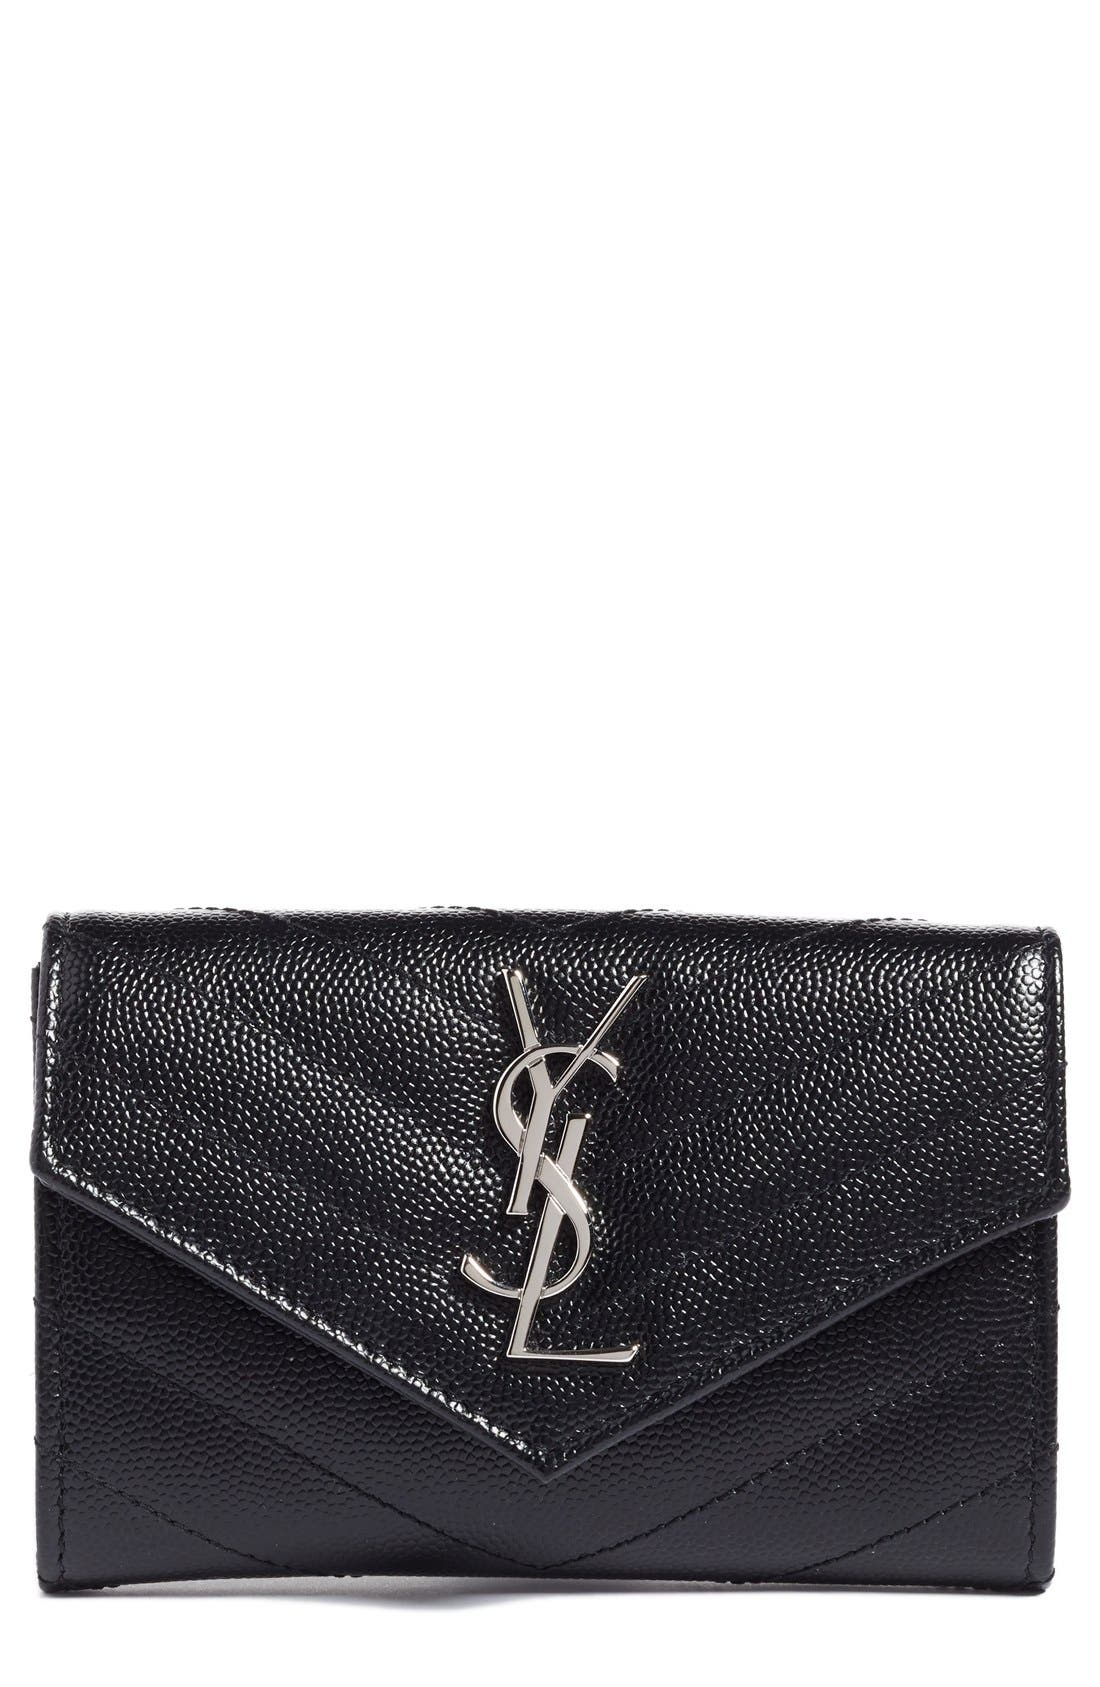 Main Image - Saint Laurent 'Small Monogram' Leather French Wallet